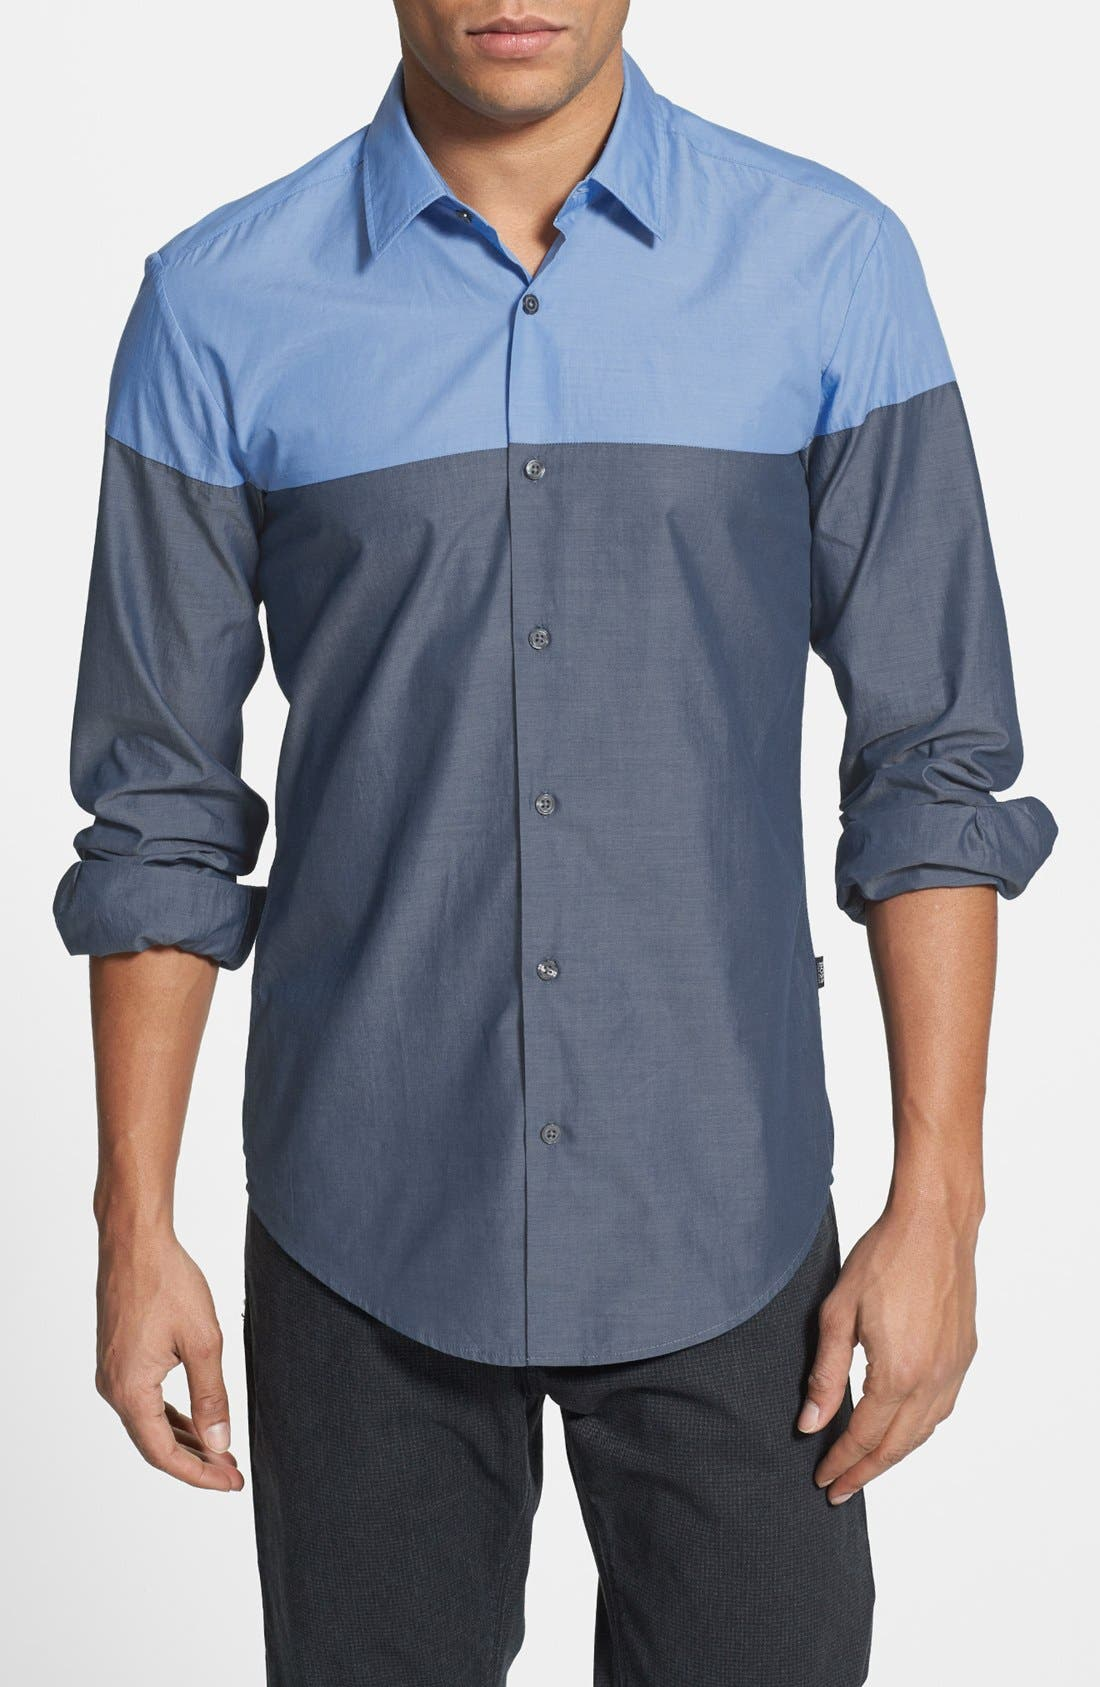 Main Image - BOSS HUGO BOSS 'Ronny' Colorblock Sport Shirt